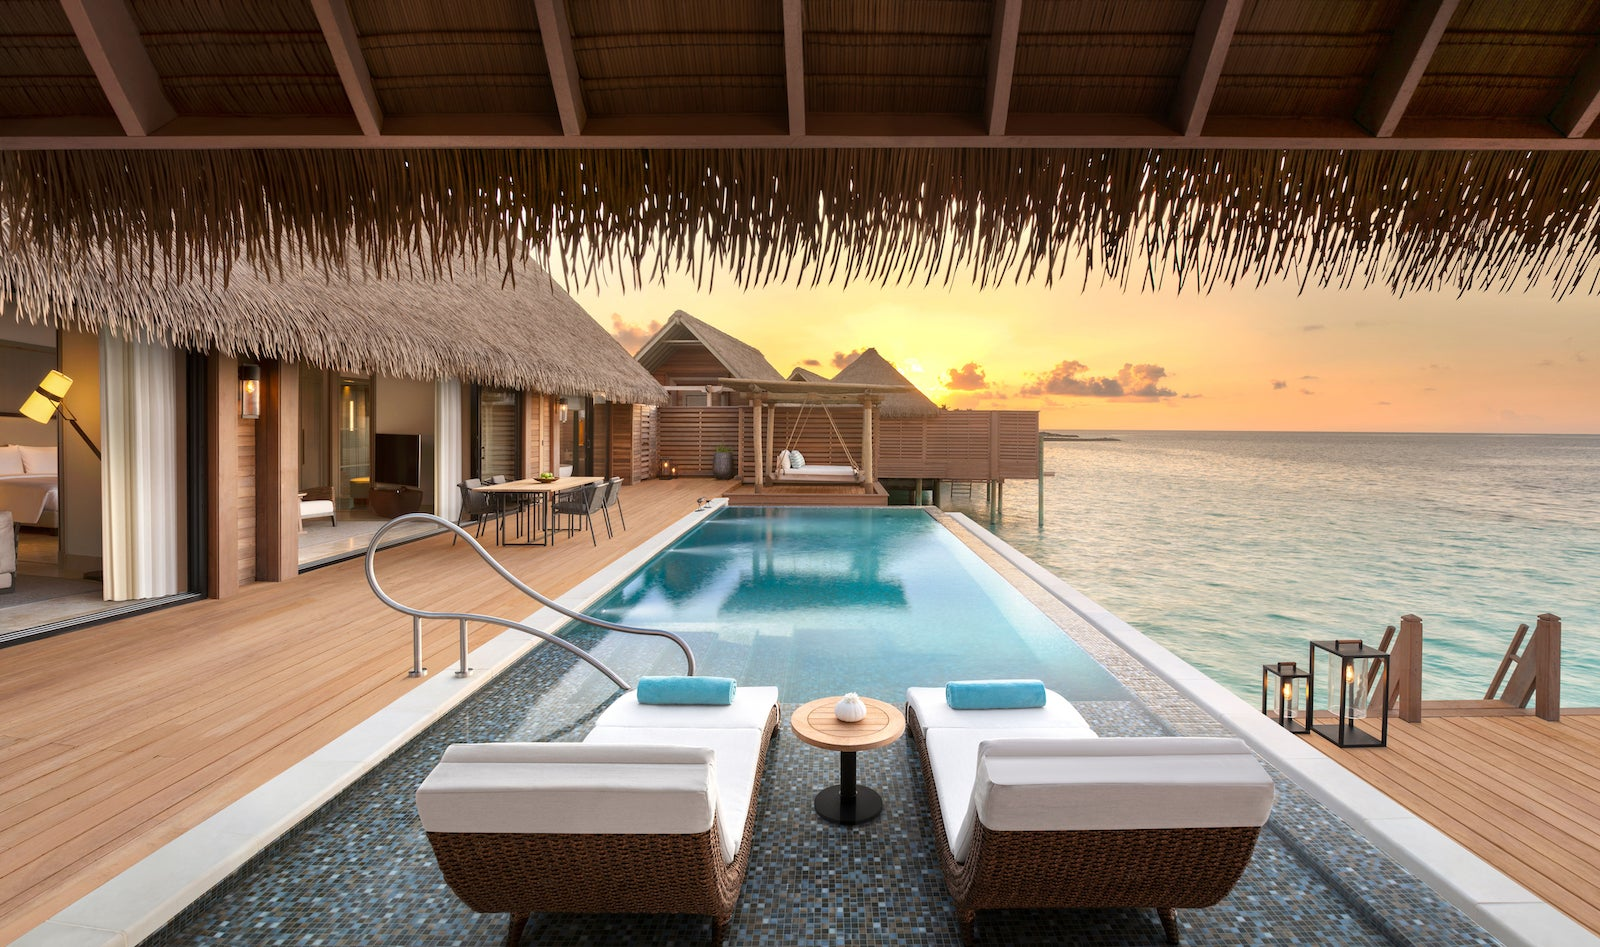 Waldorf Astoria Maldives award space currently open at the old rates - The Points Guy